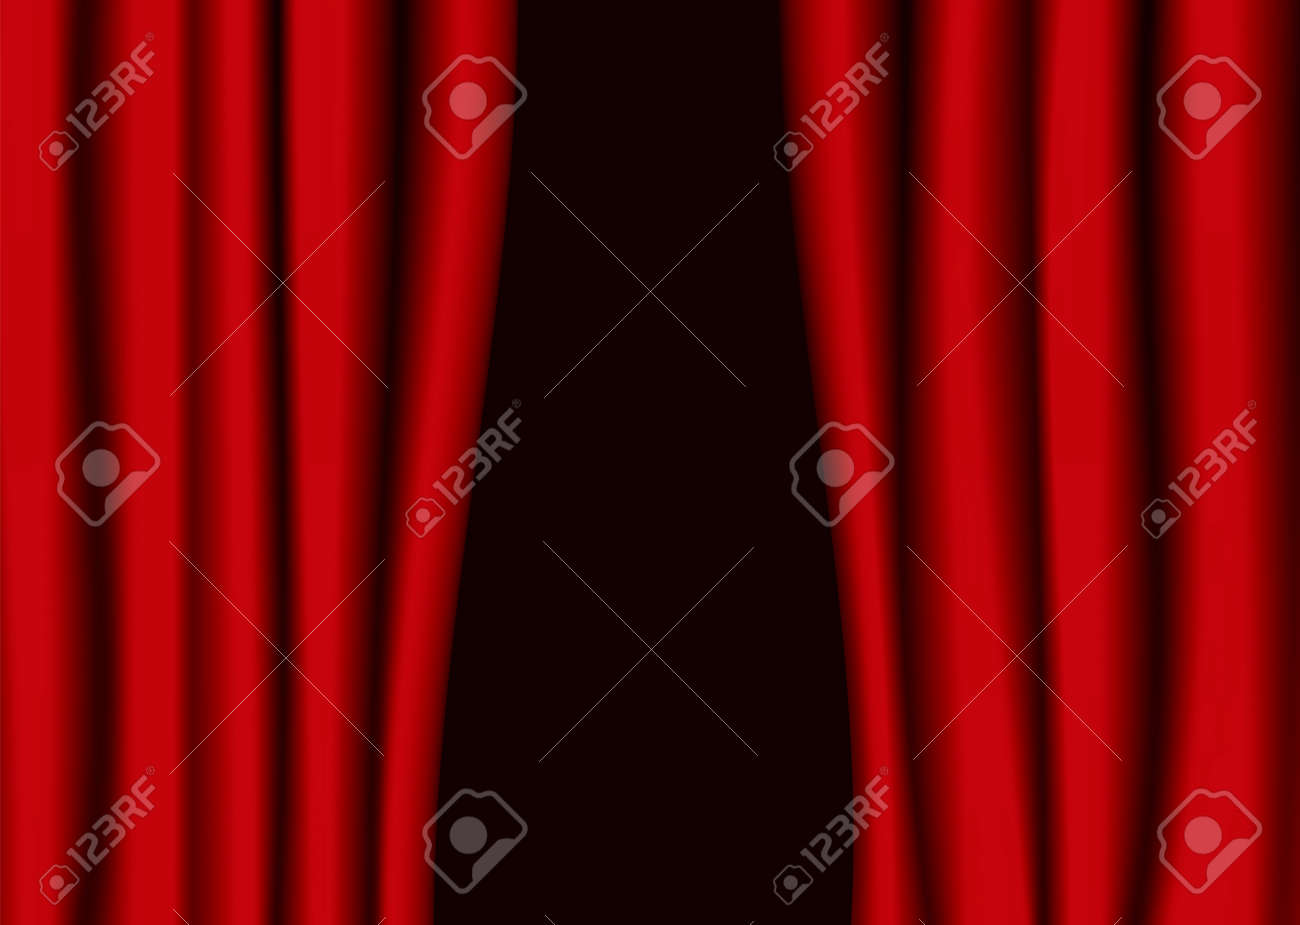 Open black curtain - Open Black Curtain Red Theater Curtains Partly Open With Black Background Stock Vector 6312954